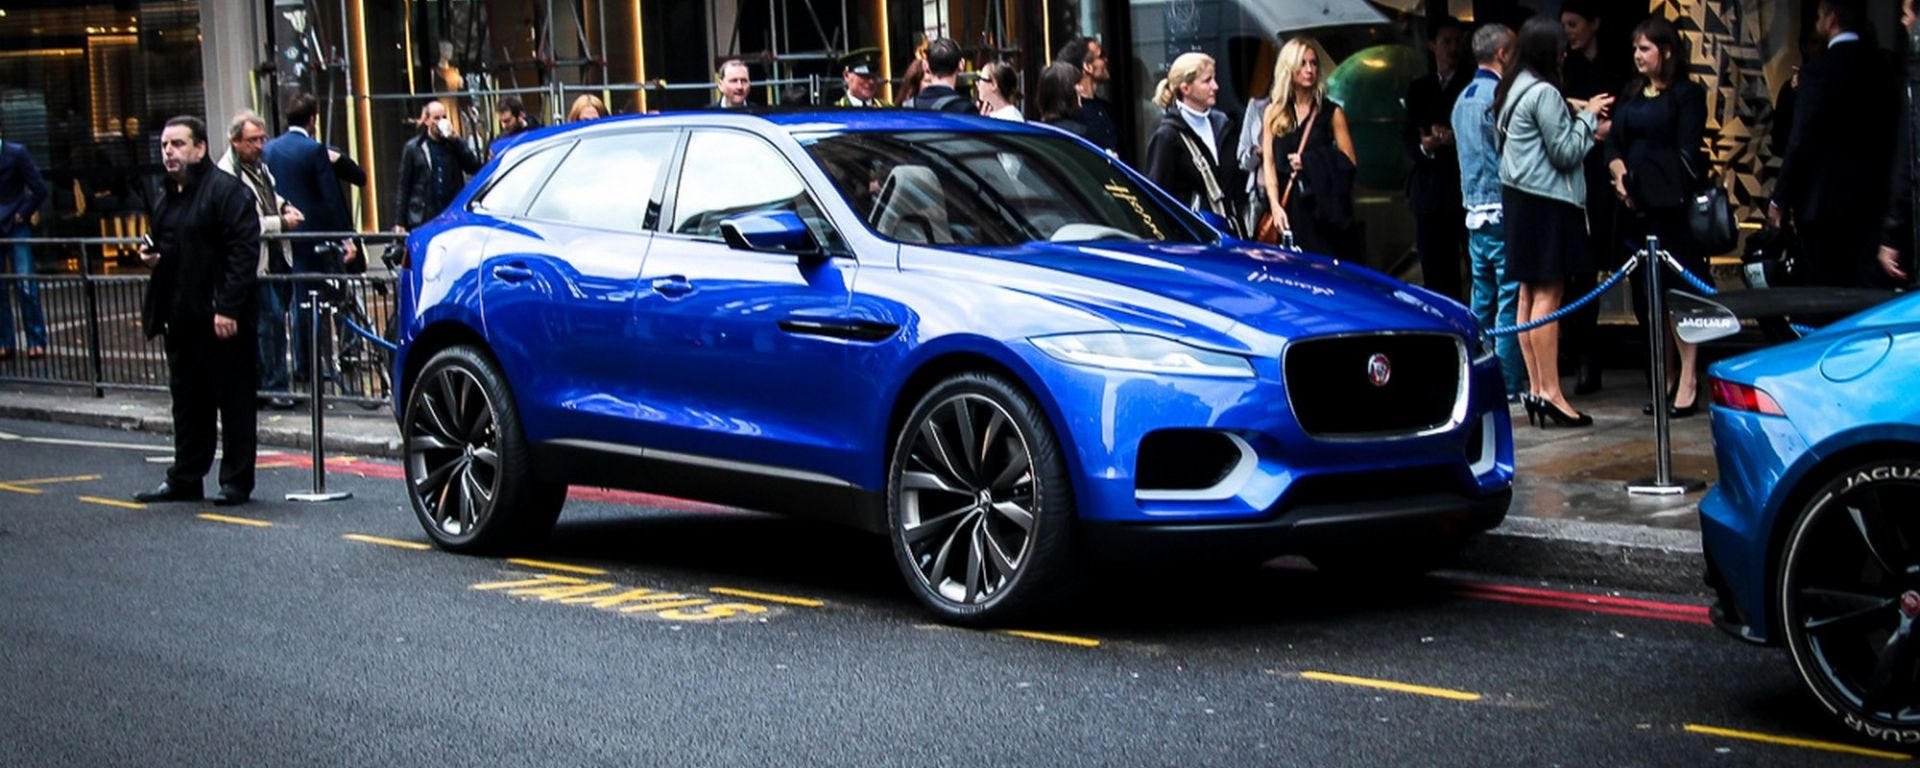 Jaguar Land Rover, in UK le vendite stentano